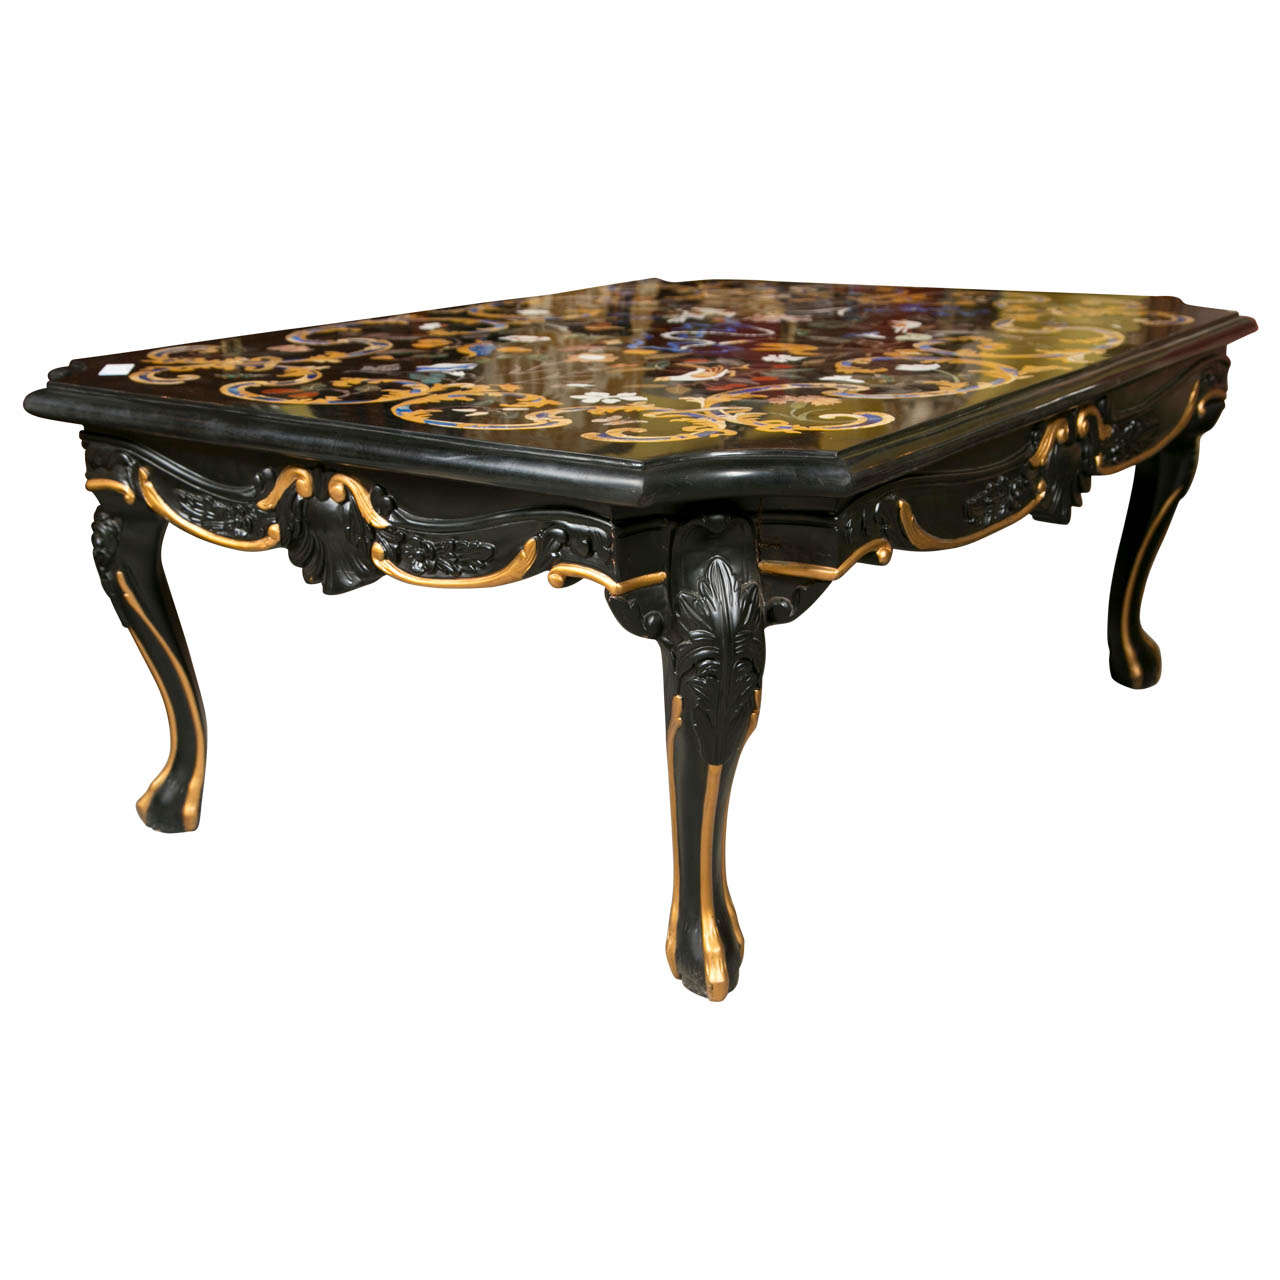 Vintage italian pietra dura marble top coffee table at 1stdibs Coffee tables with marble tops